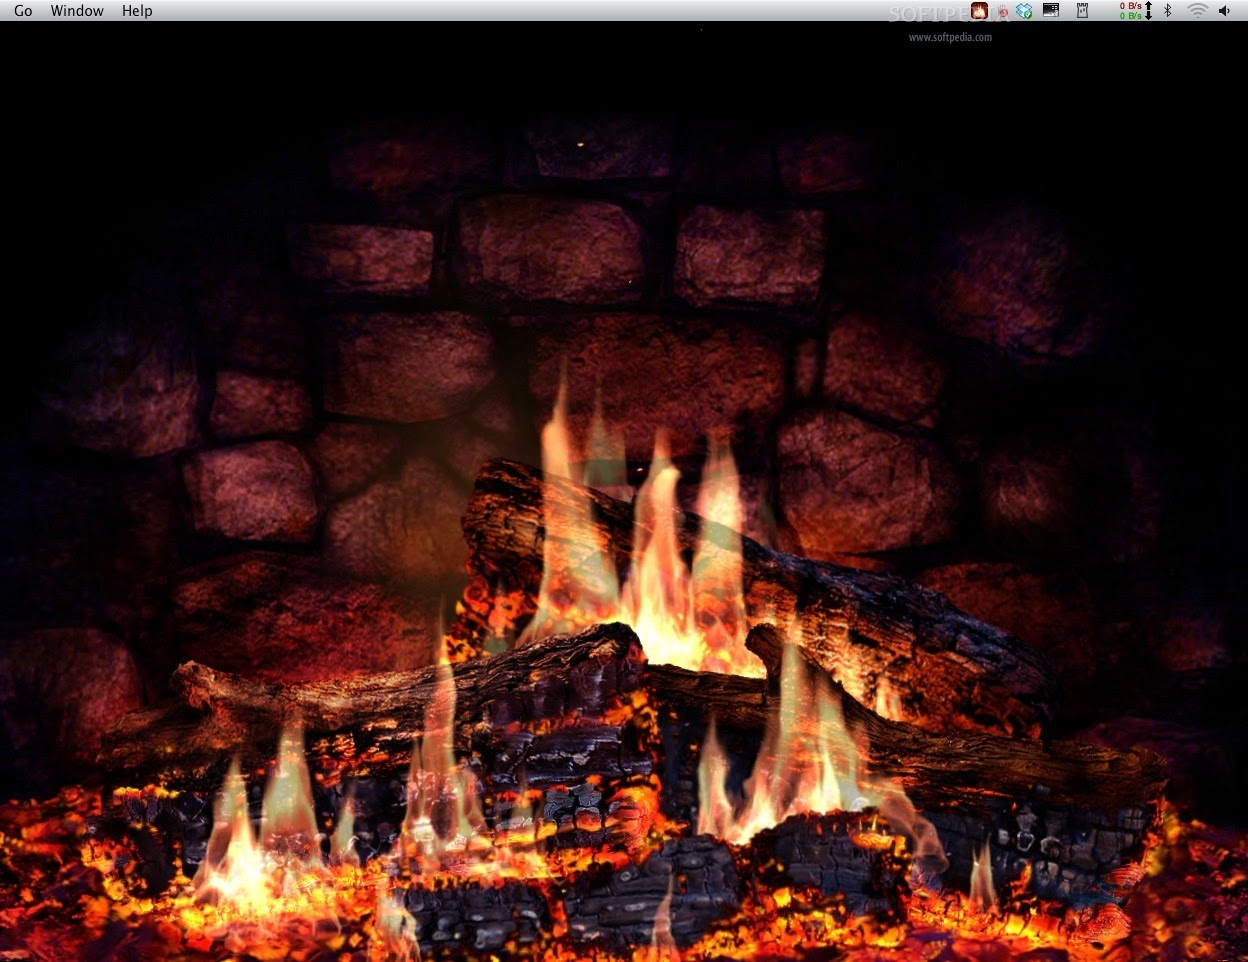 Animated Fish Tank Wallpaper Fireplace Wallpaper Animated Wallpaper Animated